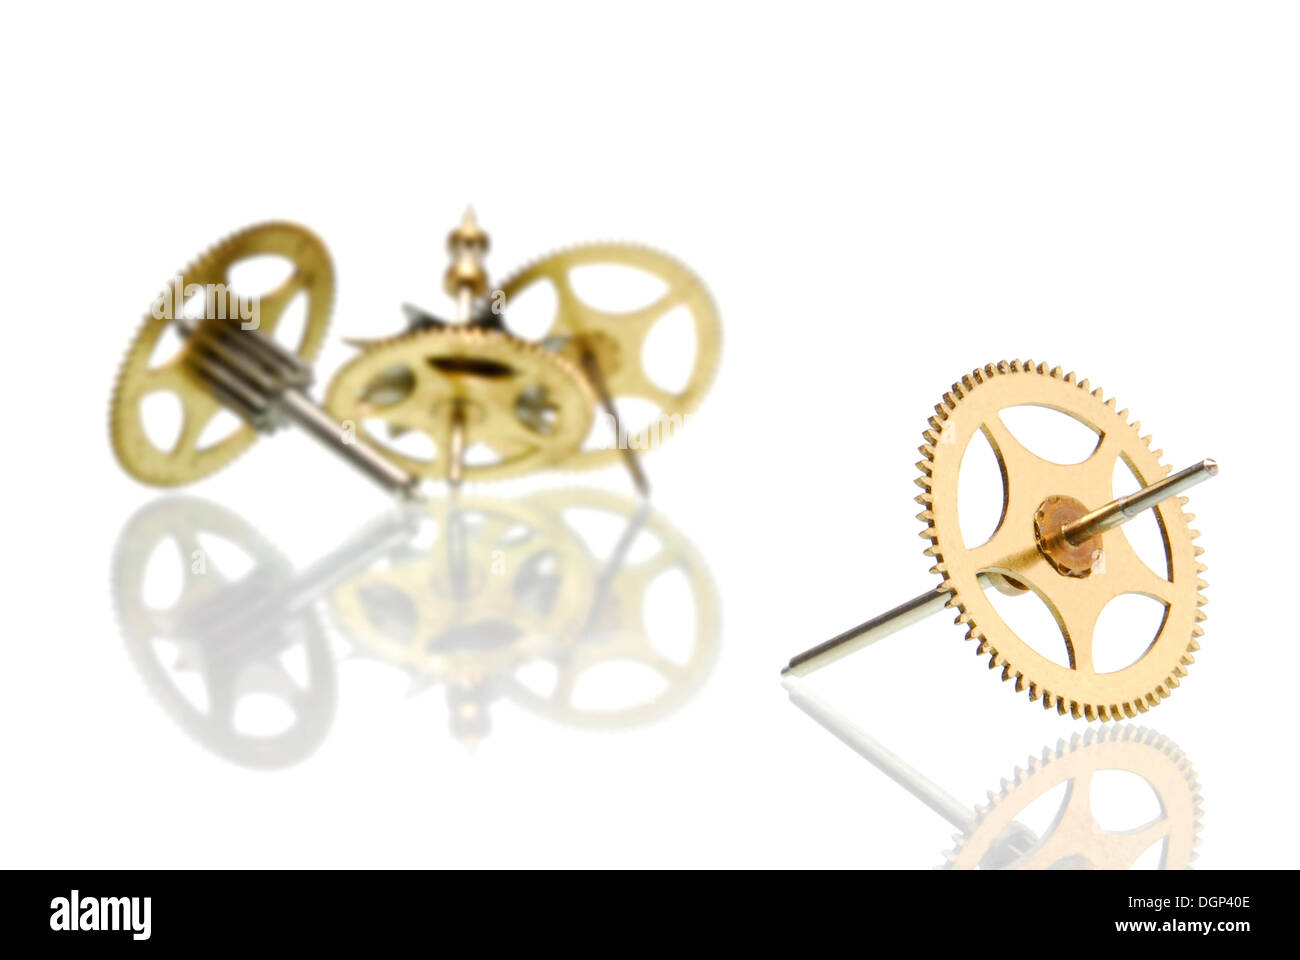 Gears or cog wheels, one at the front in focus, three behind out of focus - Stock Image